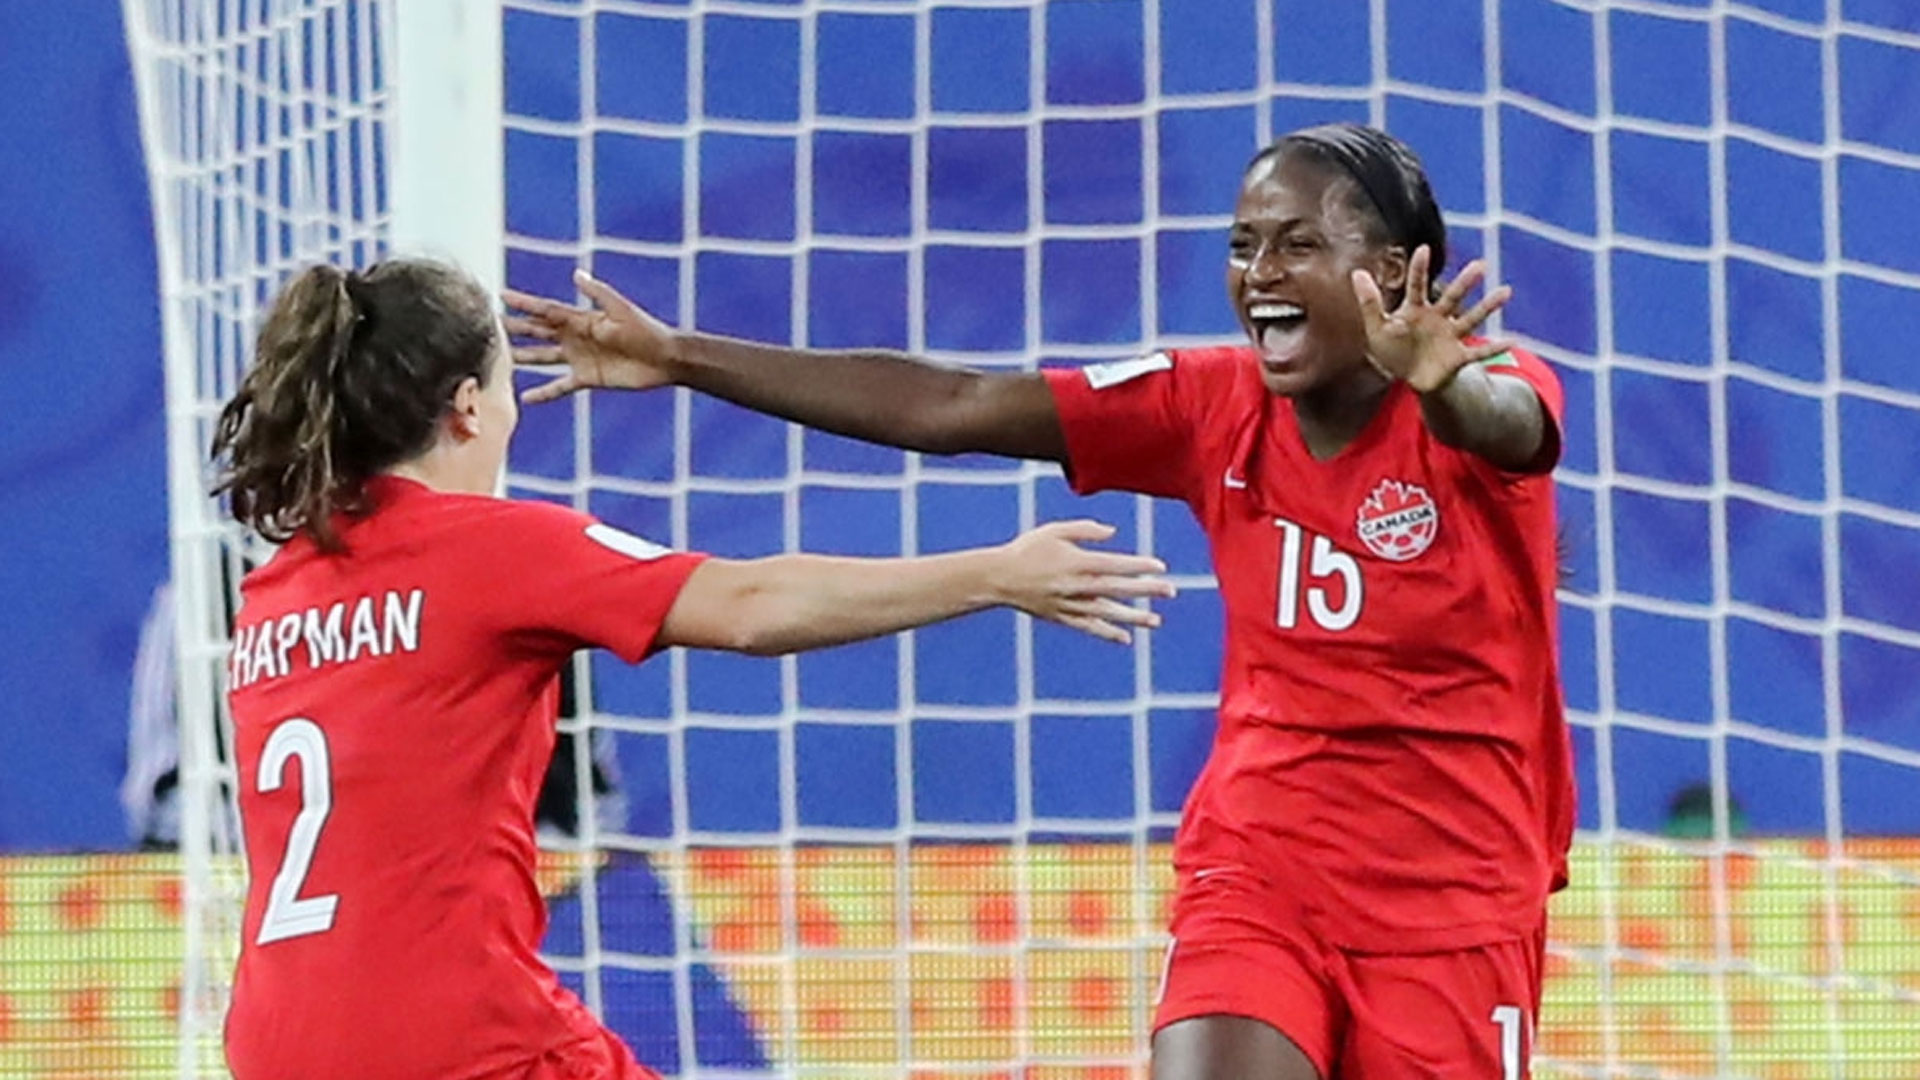 FIFA Women's World Cup: Canada 2, New Zealand 0 - Video - TSN